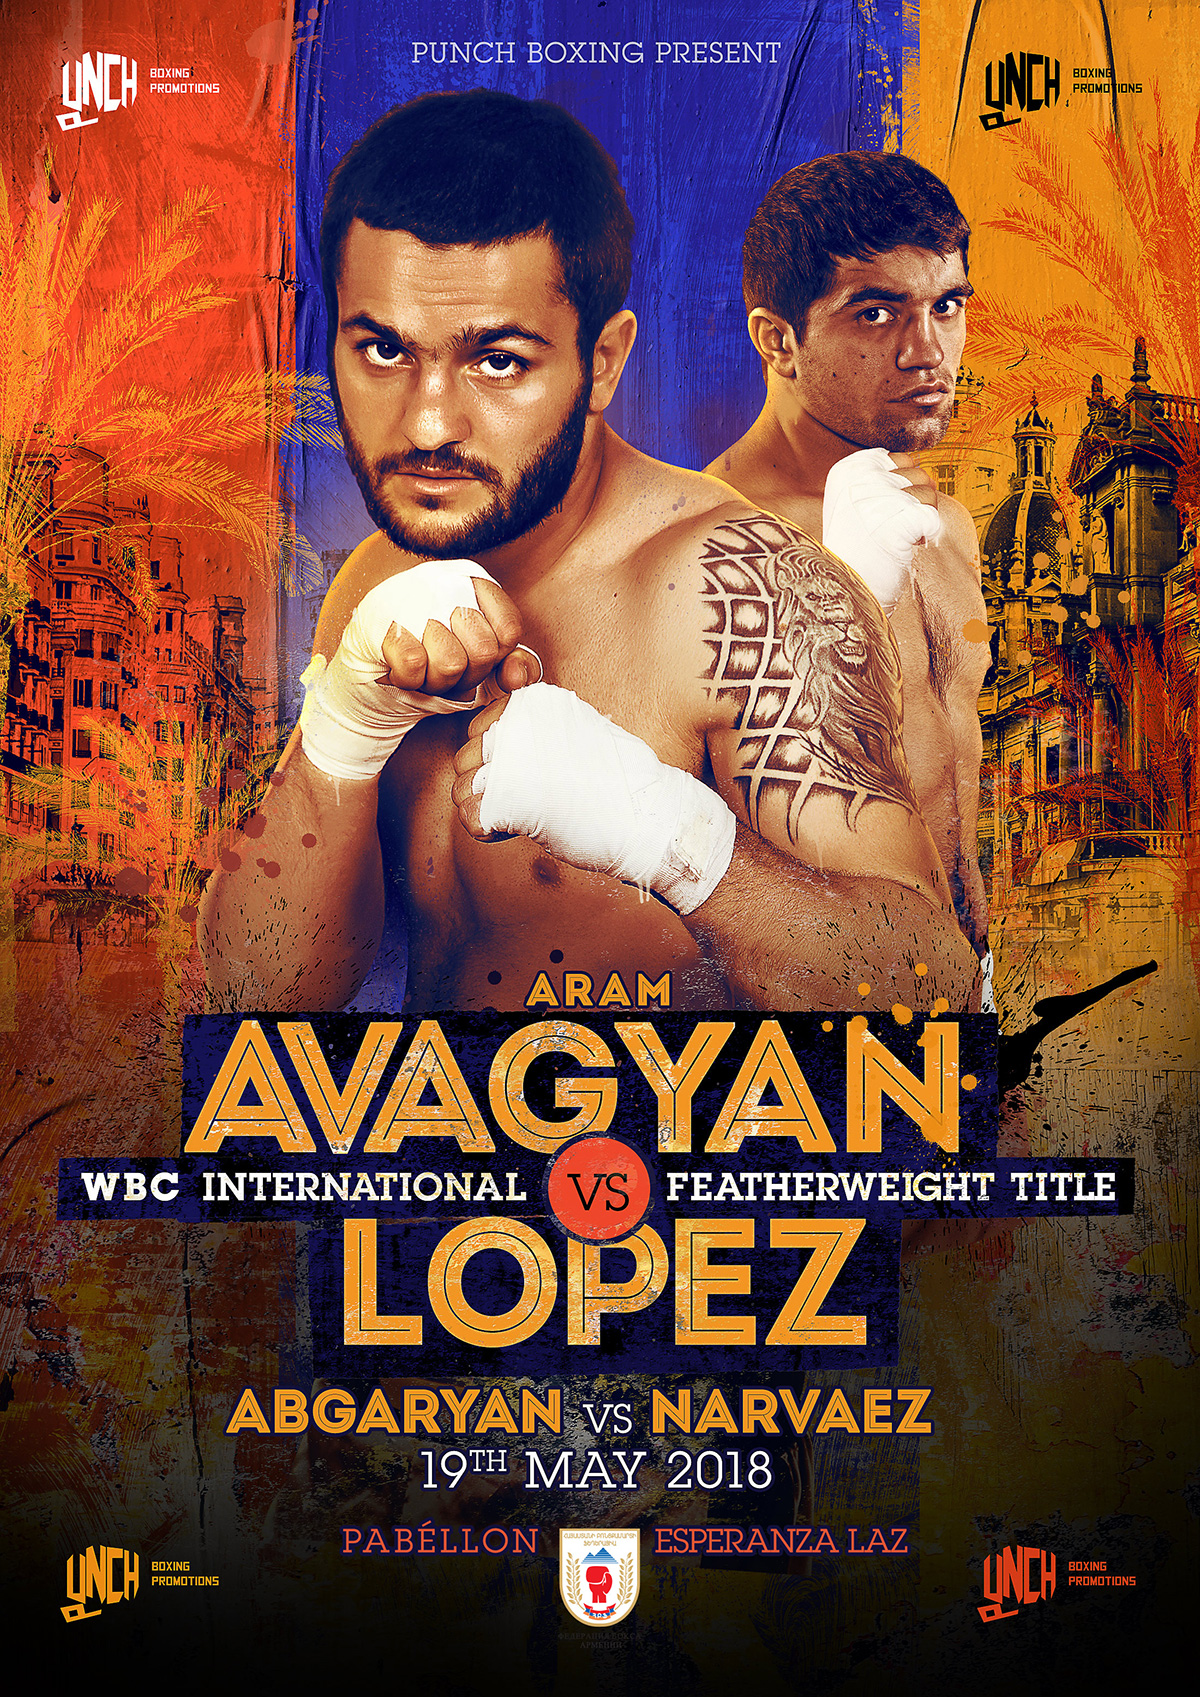 poster for a boxing fight in Valencia, Spain featuring Aram Avagyan and Emmanuel Lopez